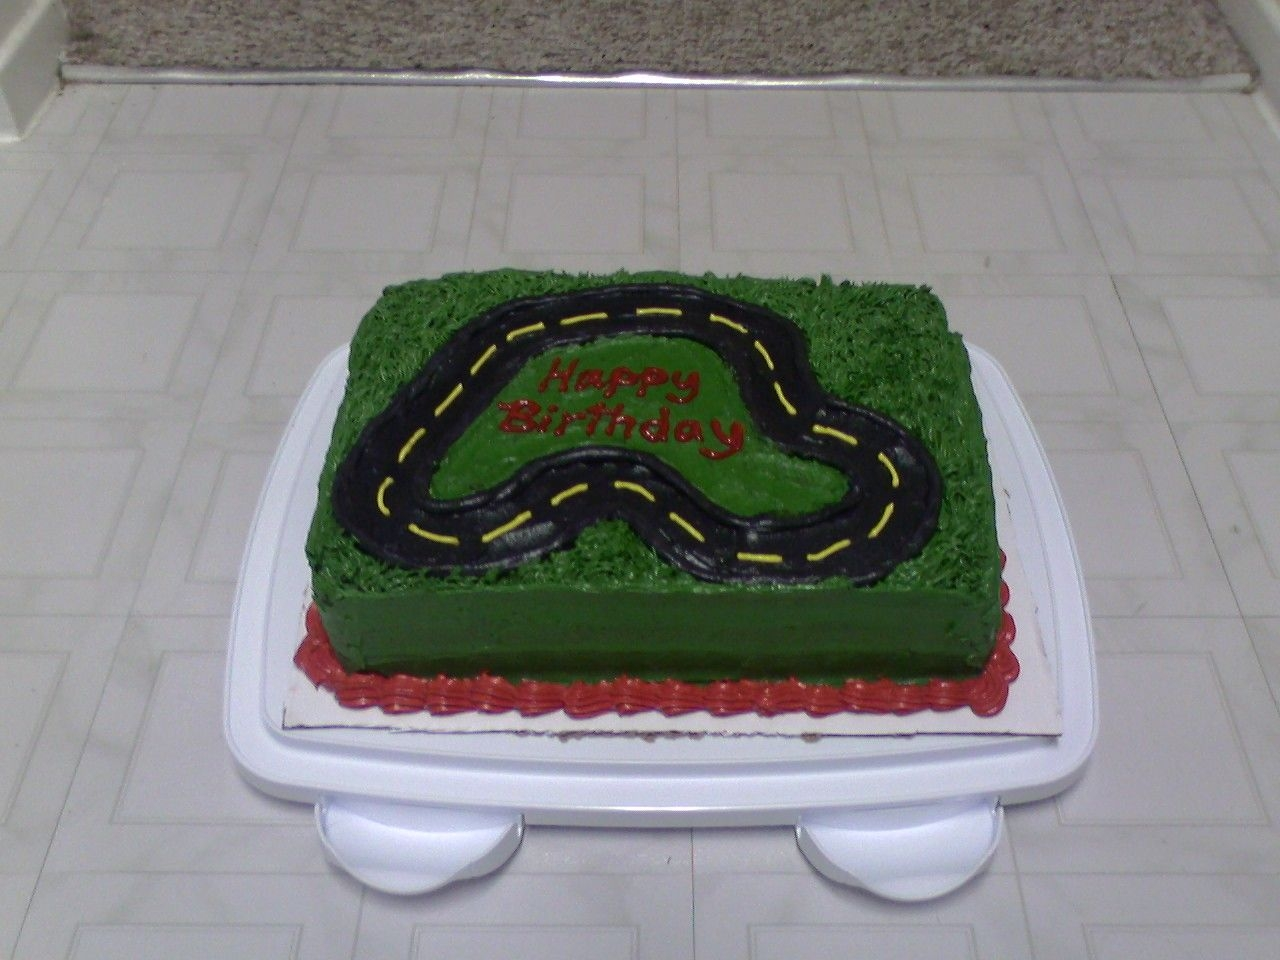 Racetrack Cake Not my favorite, I was in a hurry and the grass didn't turn out how I was picturing it, BC too soft. But it was fun :)